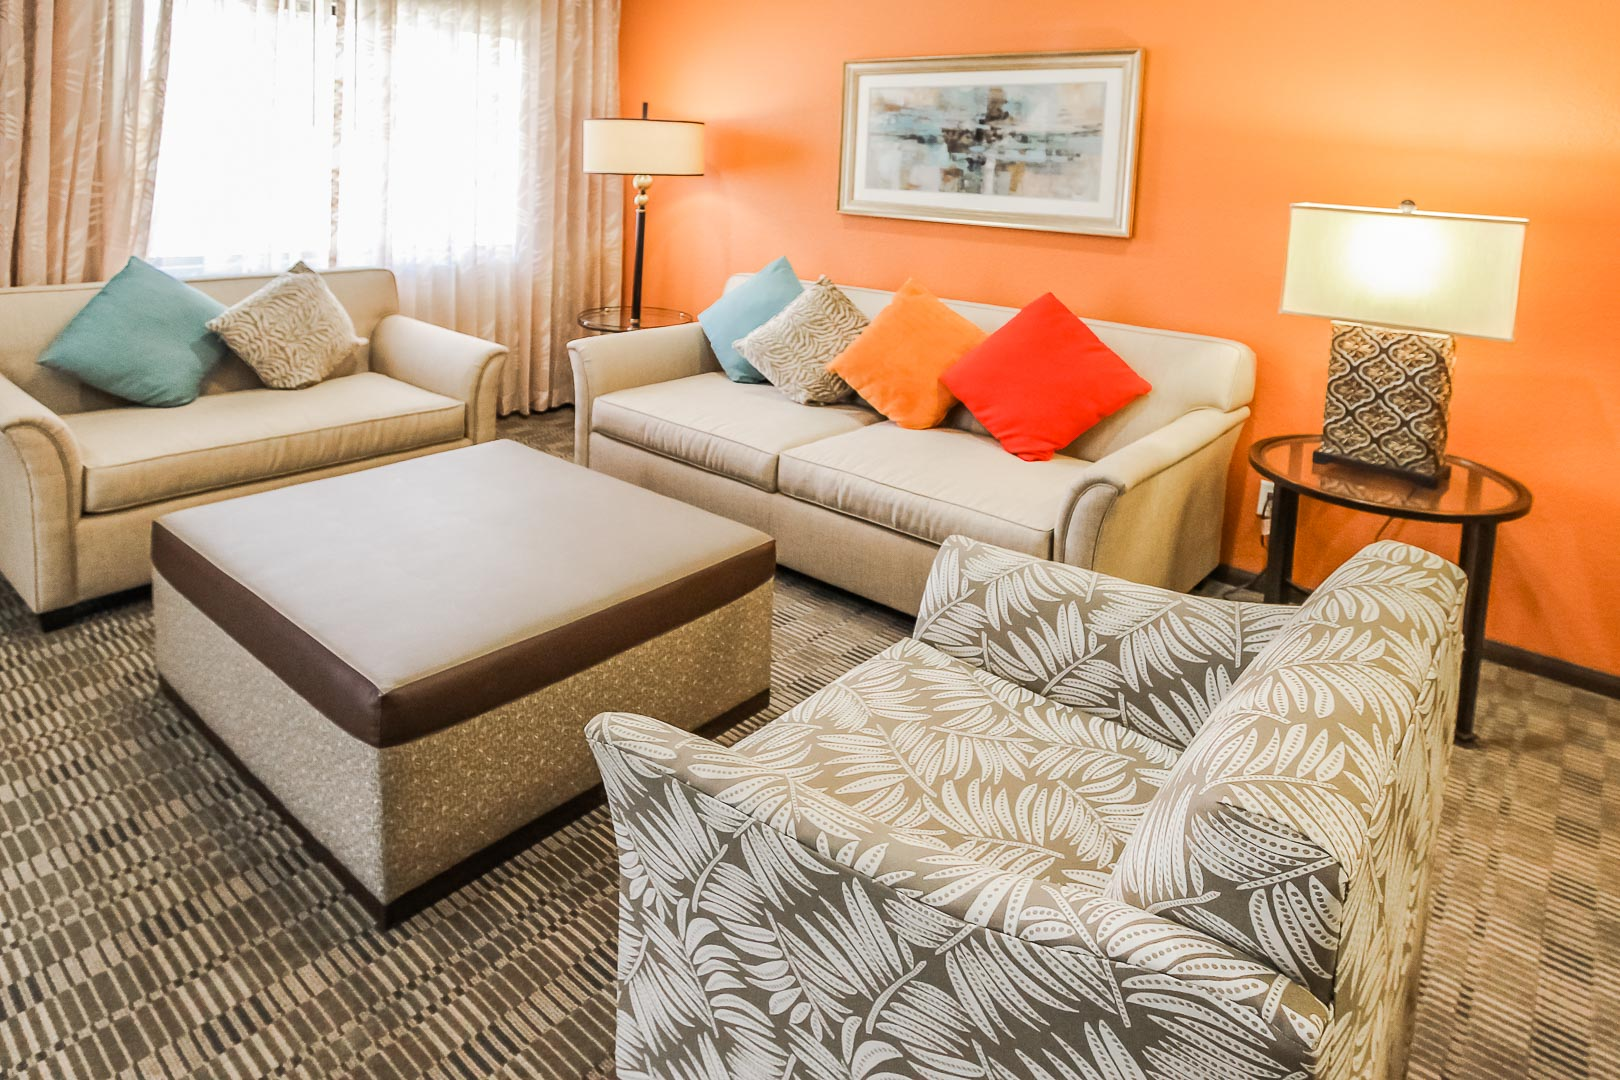 A colorful and modernized living room area at VRI's Desert Isle Resort in California.